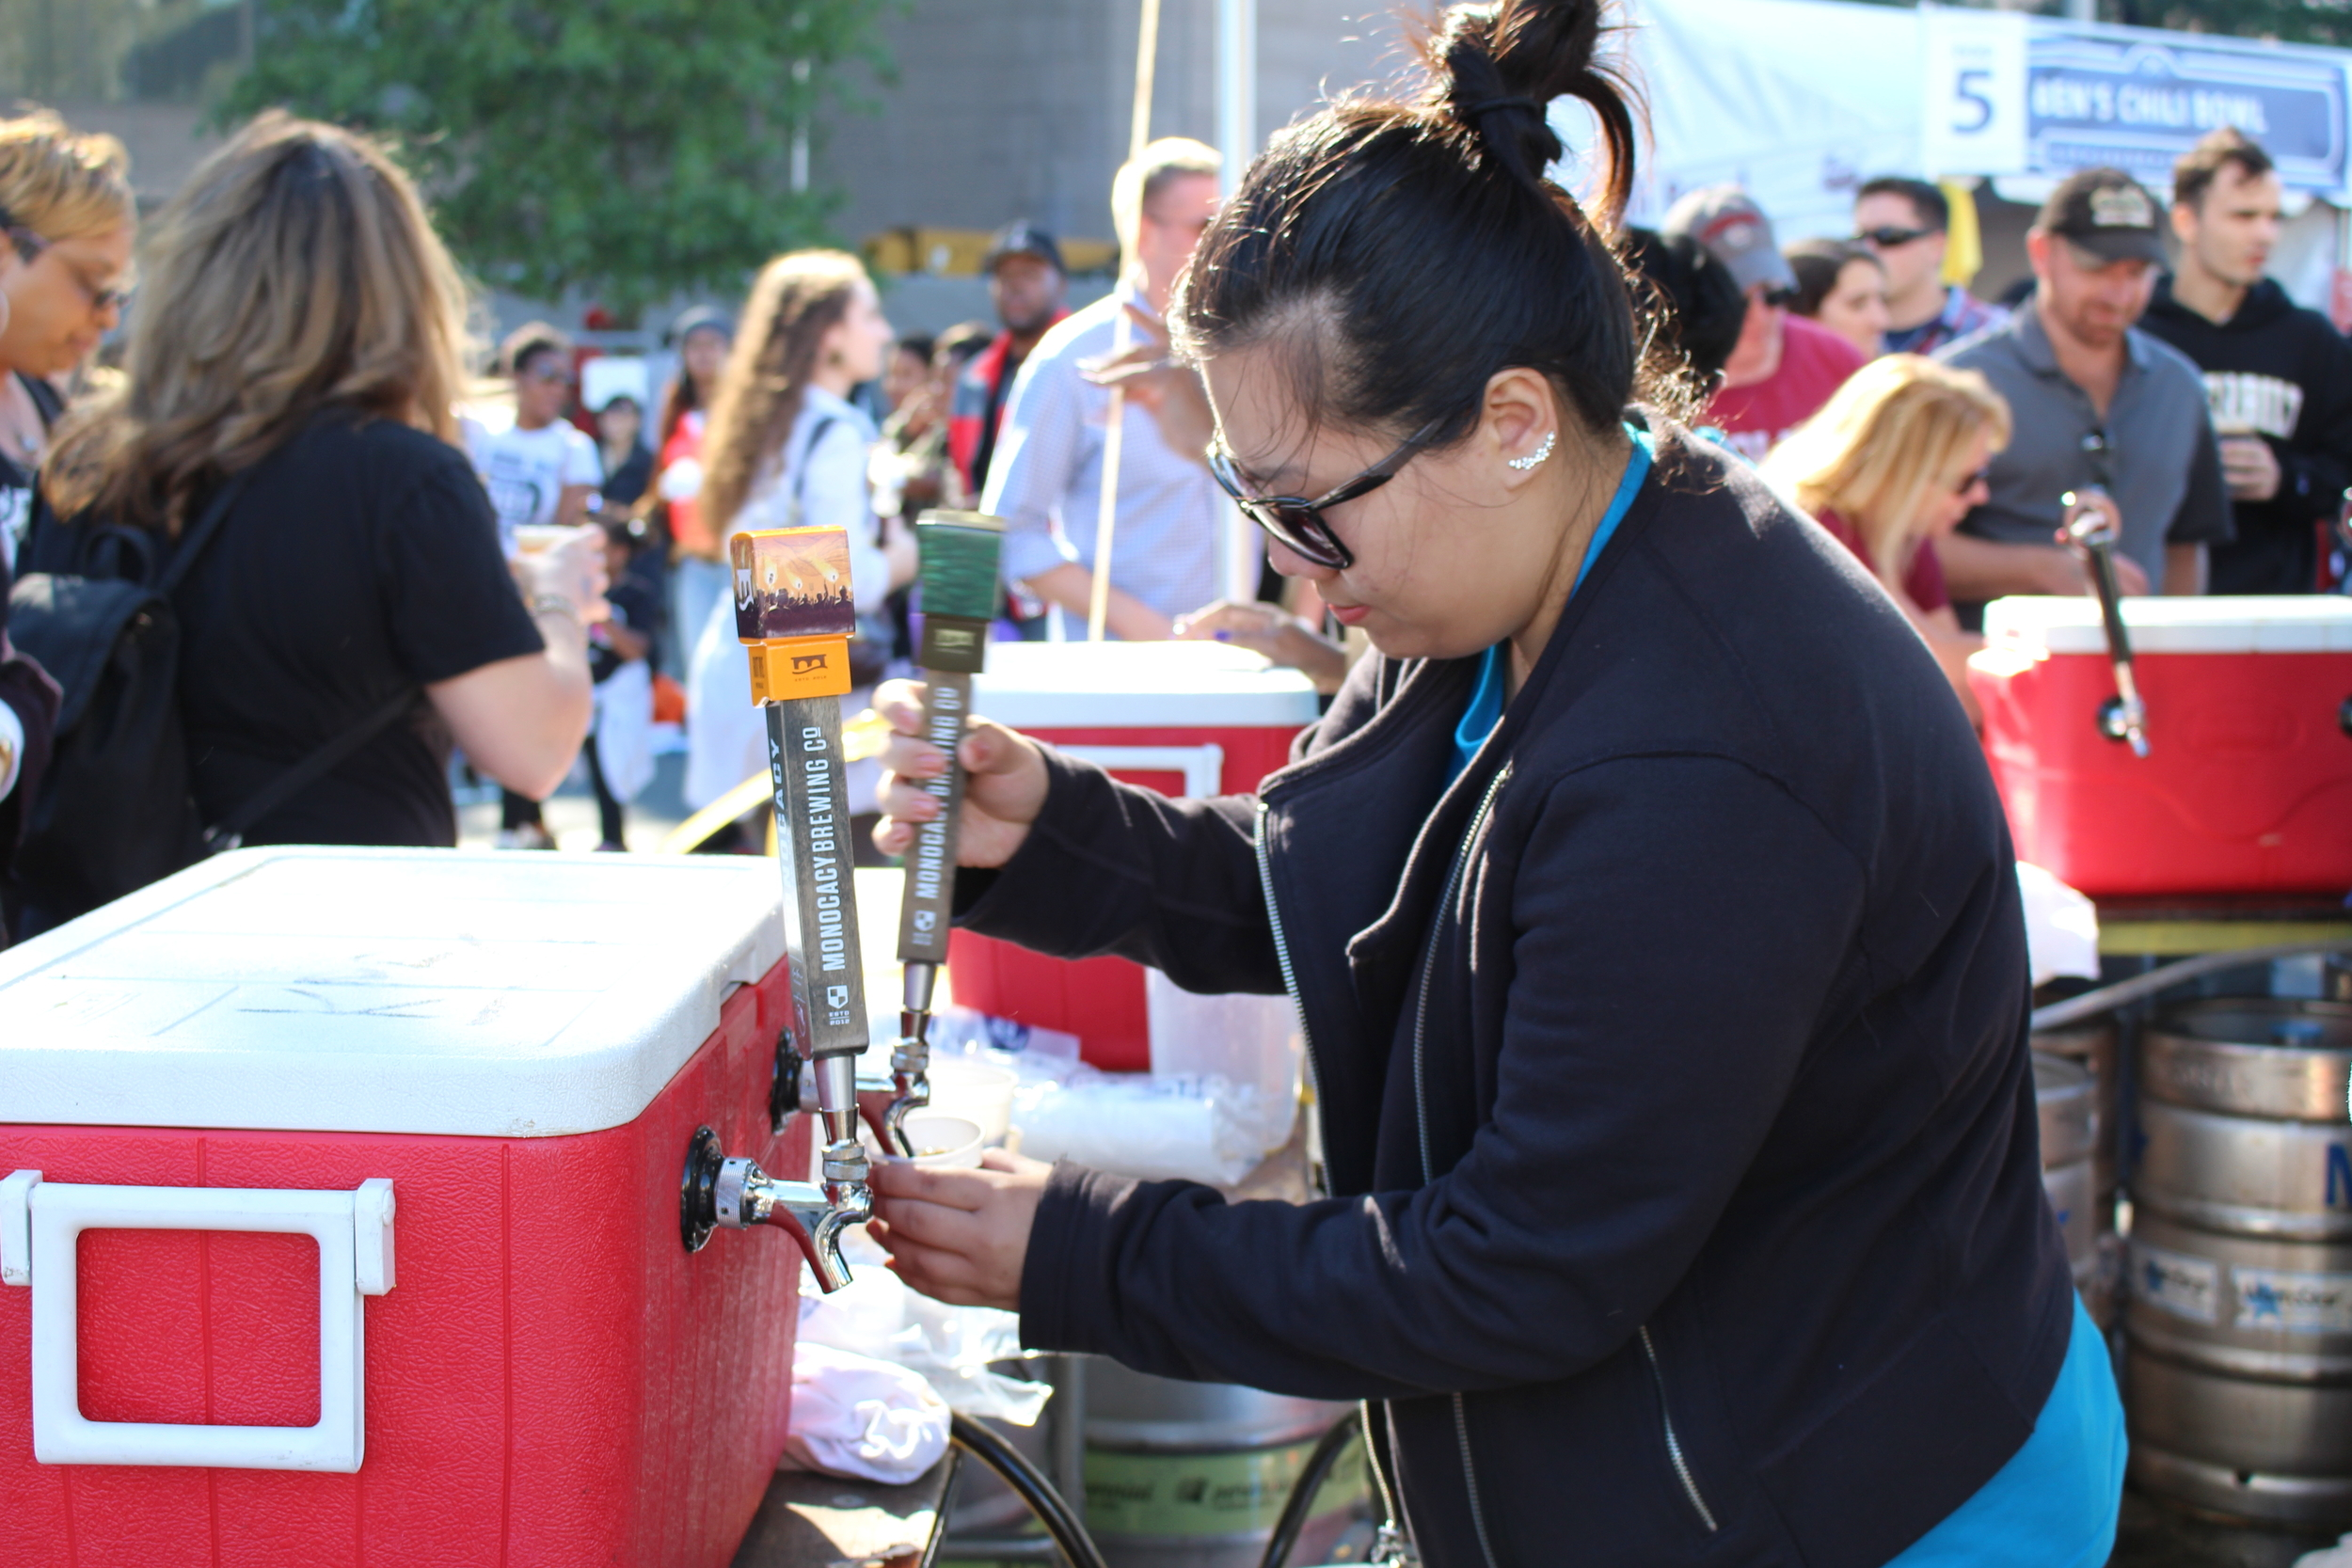 pouring samples at one of the many beer tents